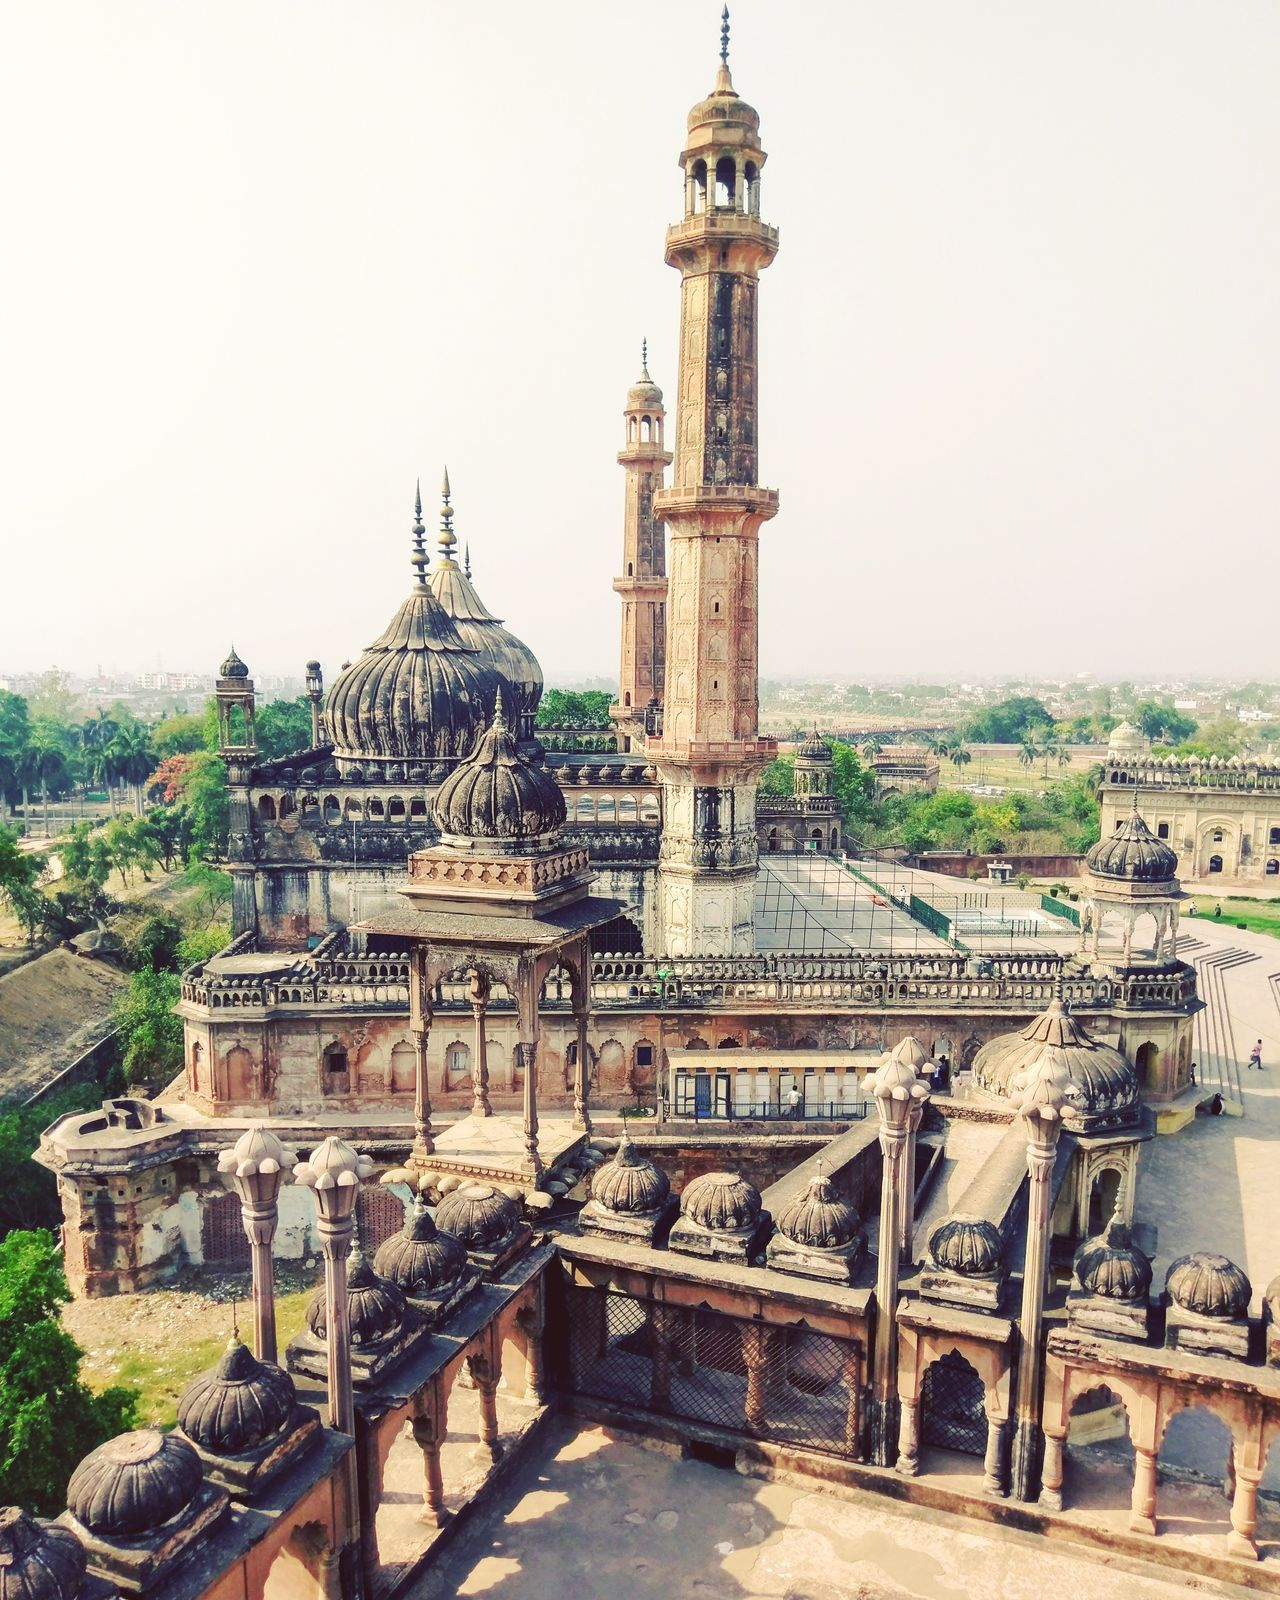 Travel Destinations Architecture Ancient Outdoors Ancient Civilization Mughalarchitecture Wanderlusting Brilliant Mesmerized MughalEra Historical Place Ruins Architecture Awesome Royal Lucknowdiaries❤ Mughals Amazing